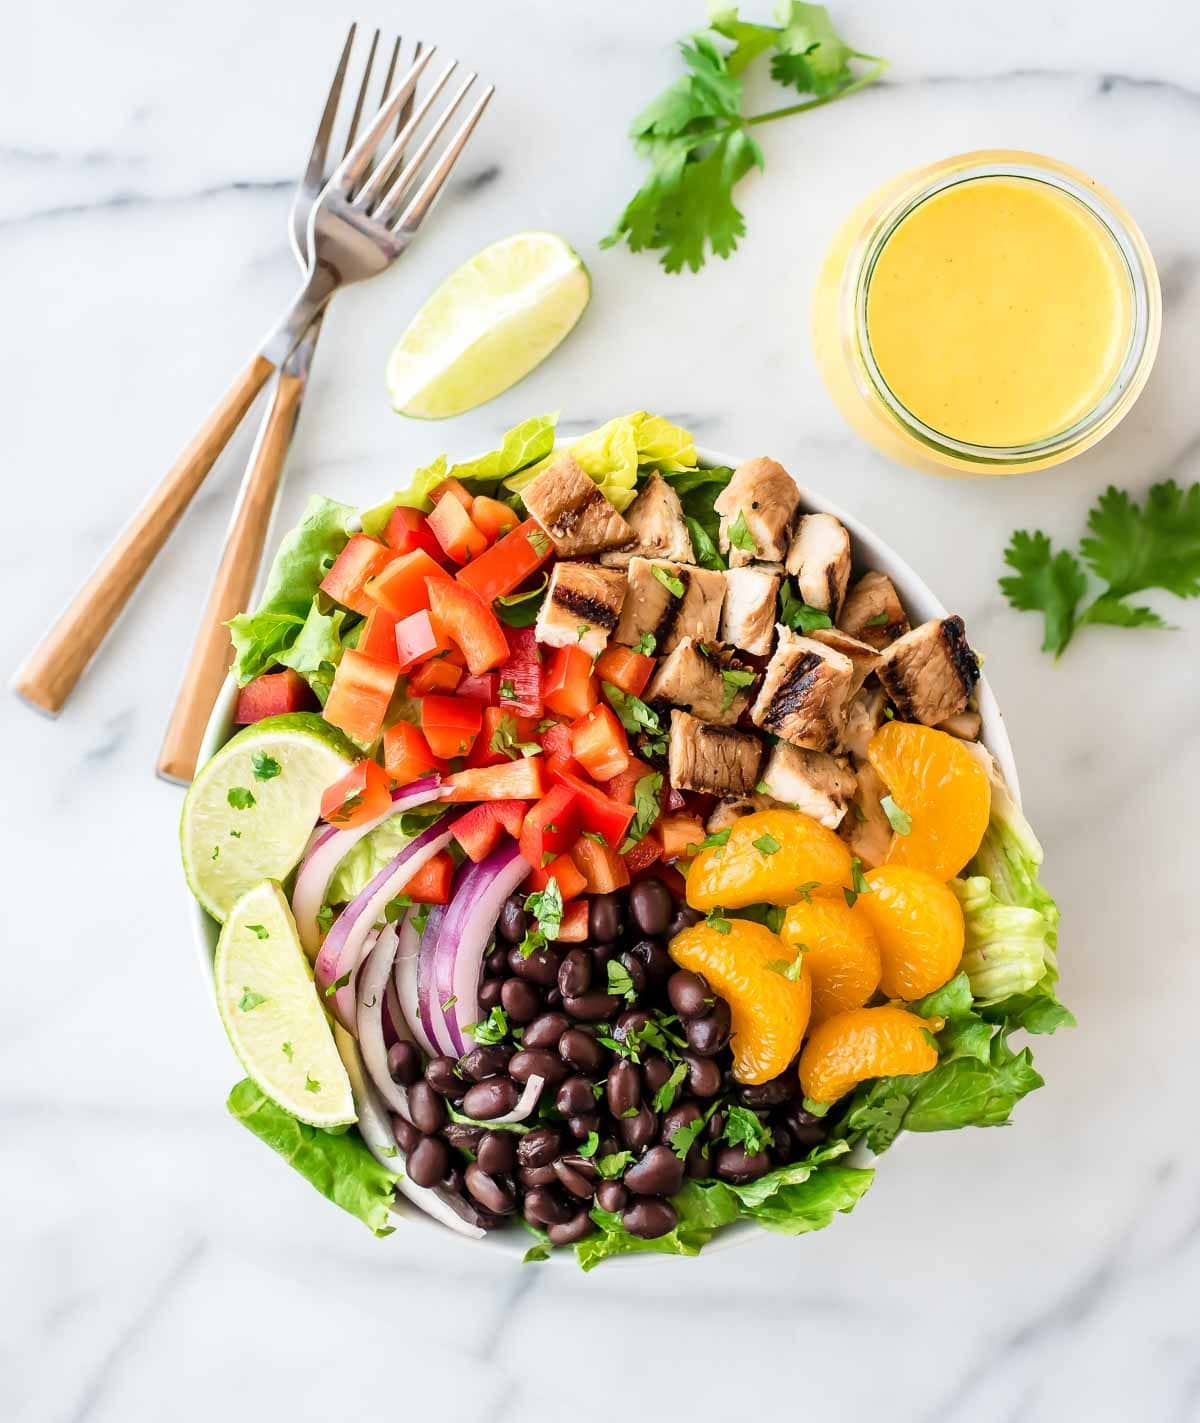 Grilled Caribbean Chicken Salad with 5 Minute Mango Dressing – Packed with juicy chicken, crunchy veggies, sweet oranges, and black beans. Super filling and DELICIOUS. The mango dressing is intoxicating! @wellplated